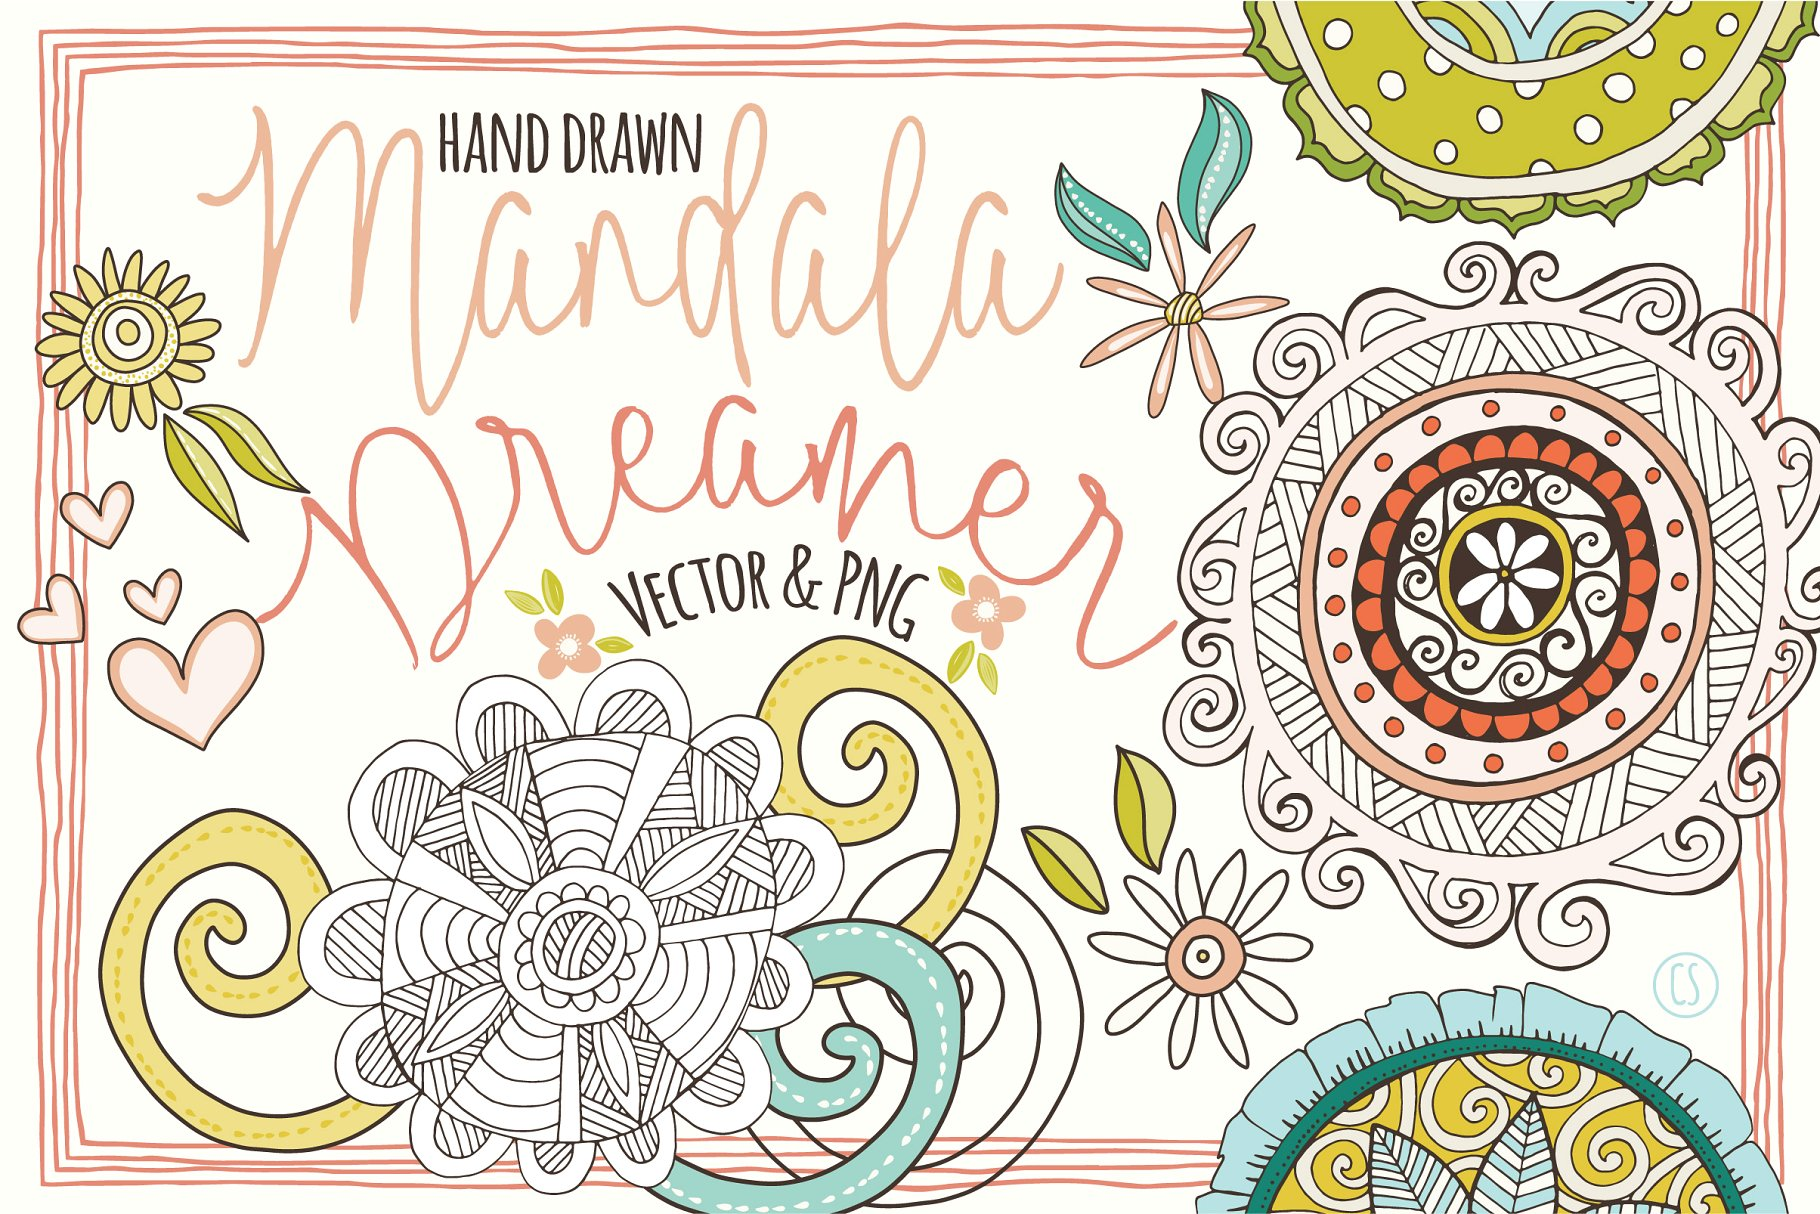 cstep-mandala-dreamer-handdrawn-decorative-.jpg